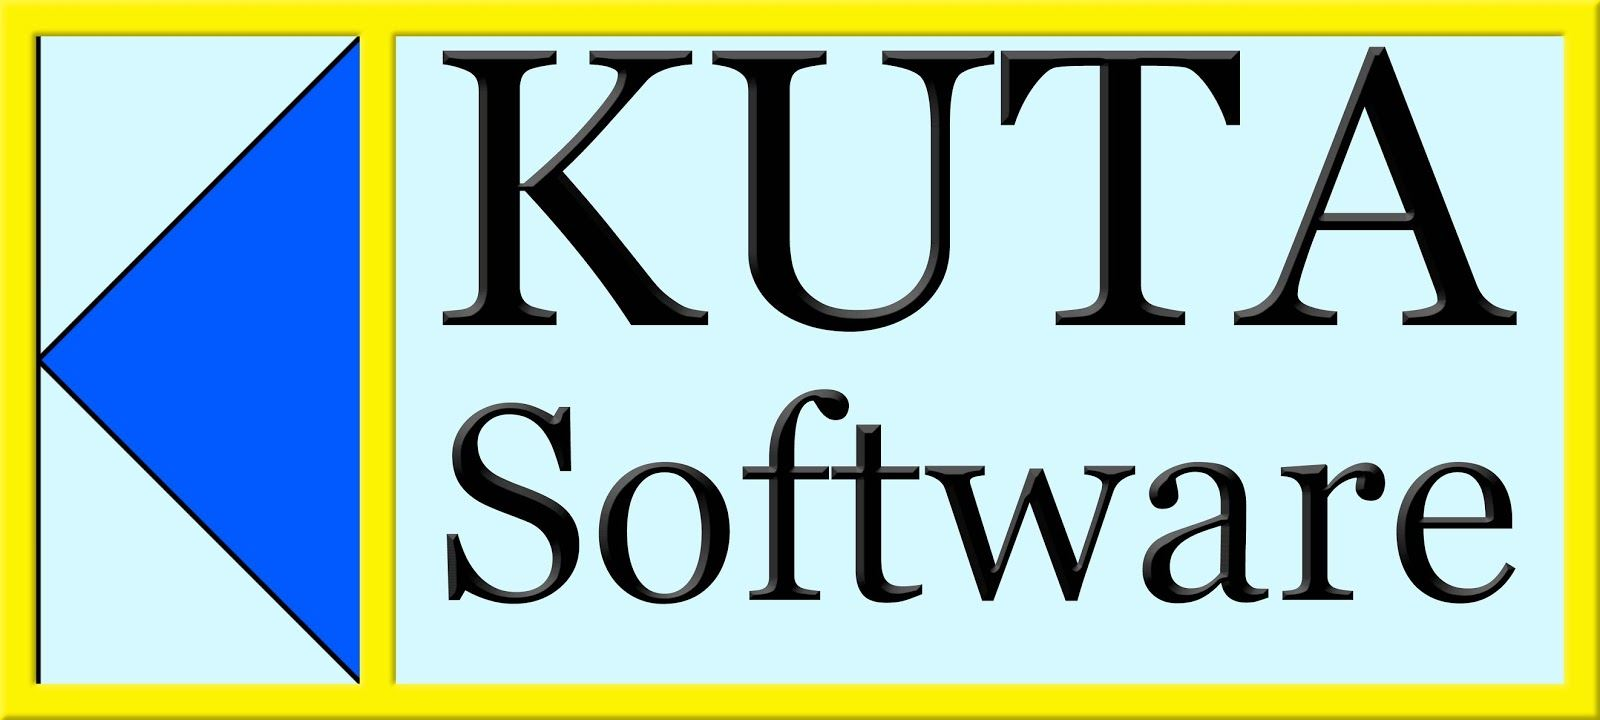 Kuta Software Logo Opens in new window